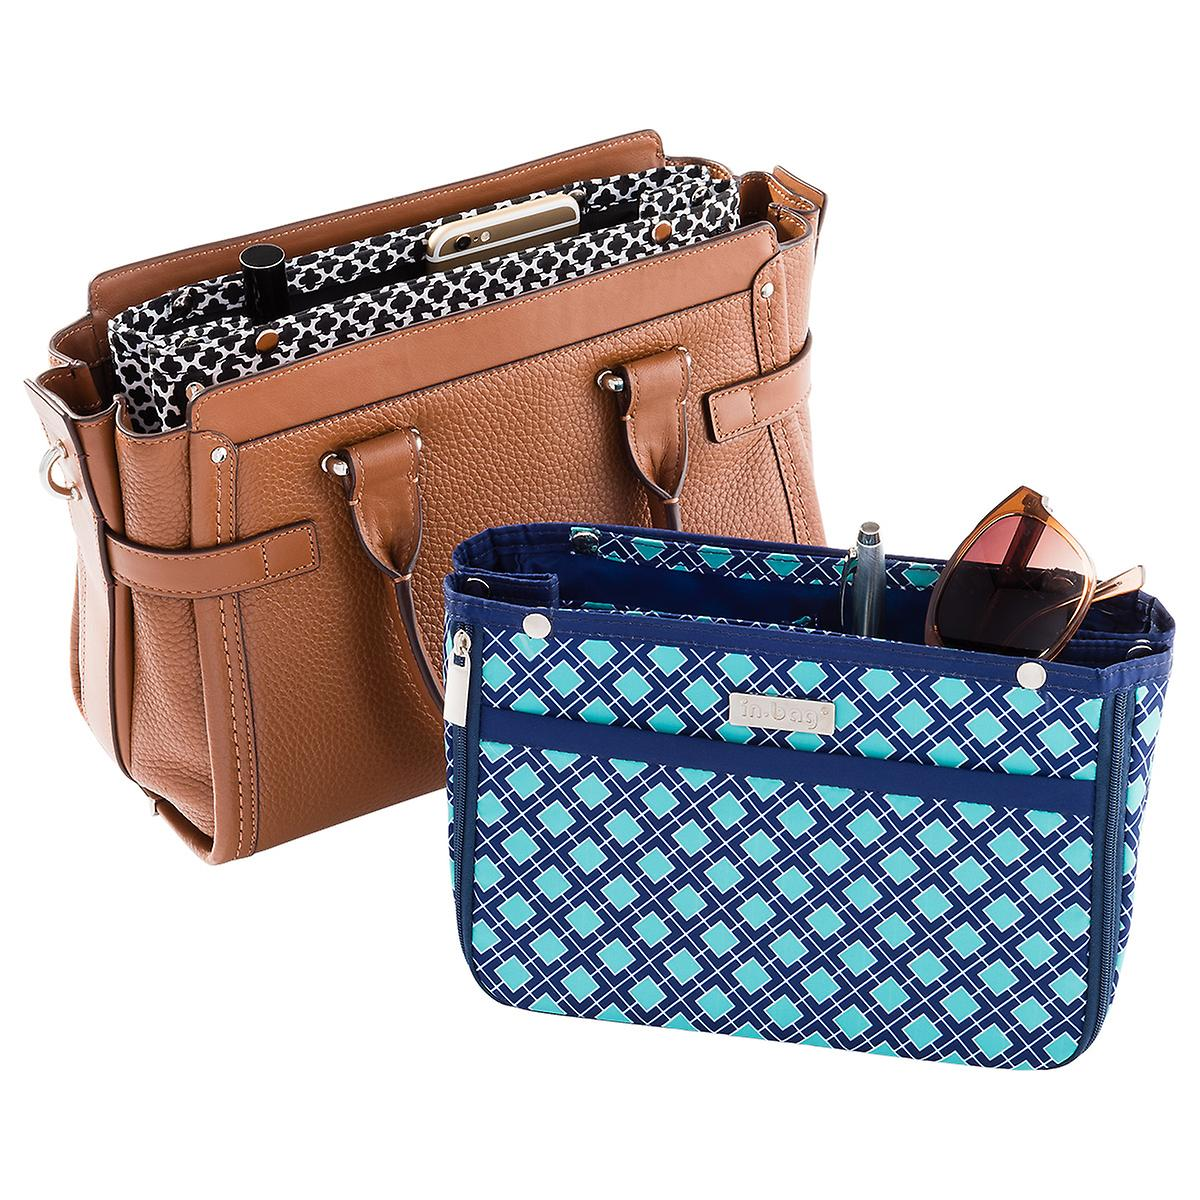 navy aqua tile in bag purse organizer the container store